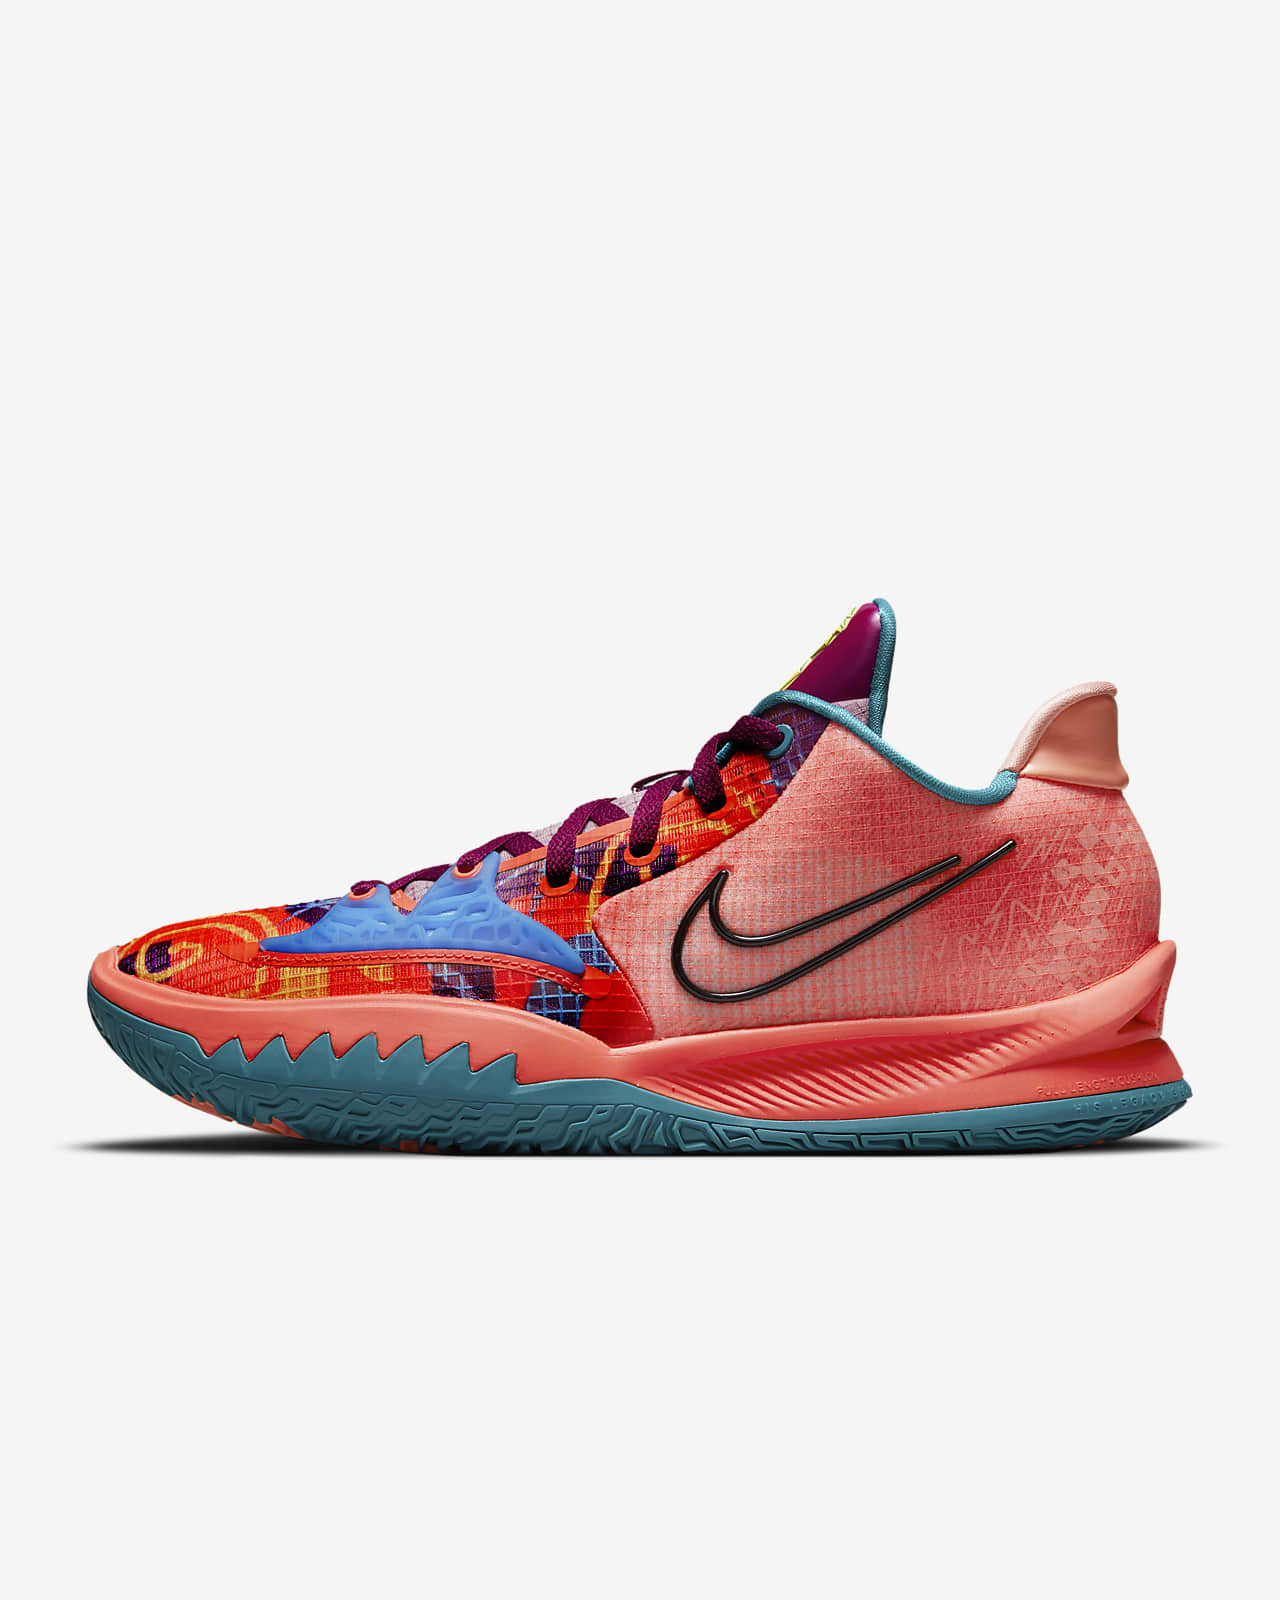 Kyrie Low 4 Basketball Shoes